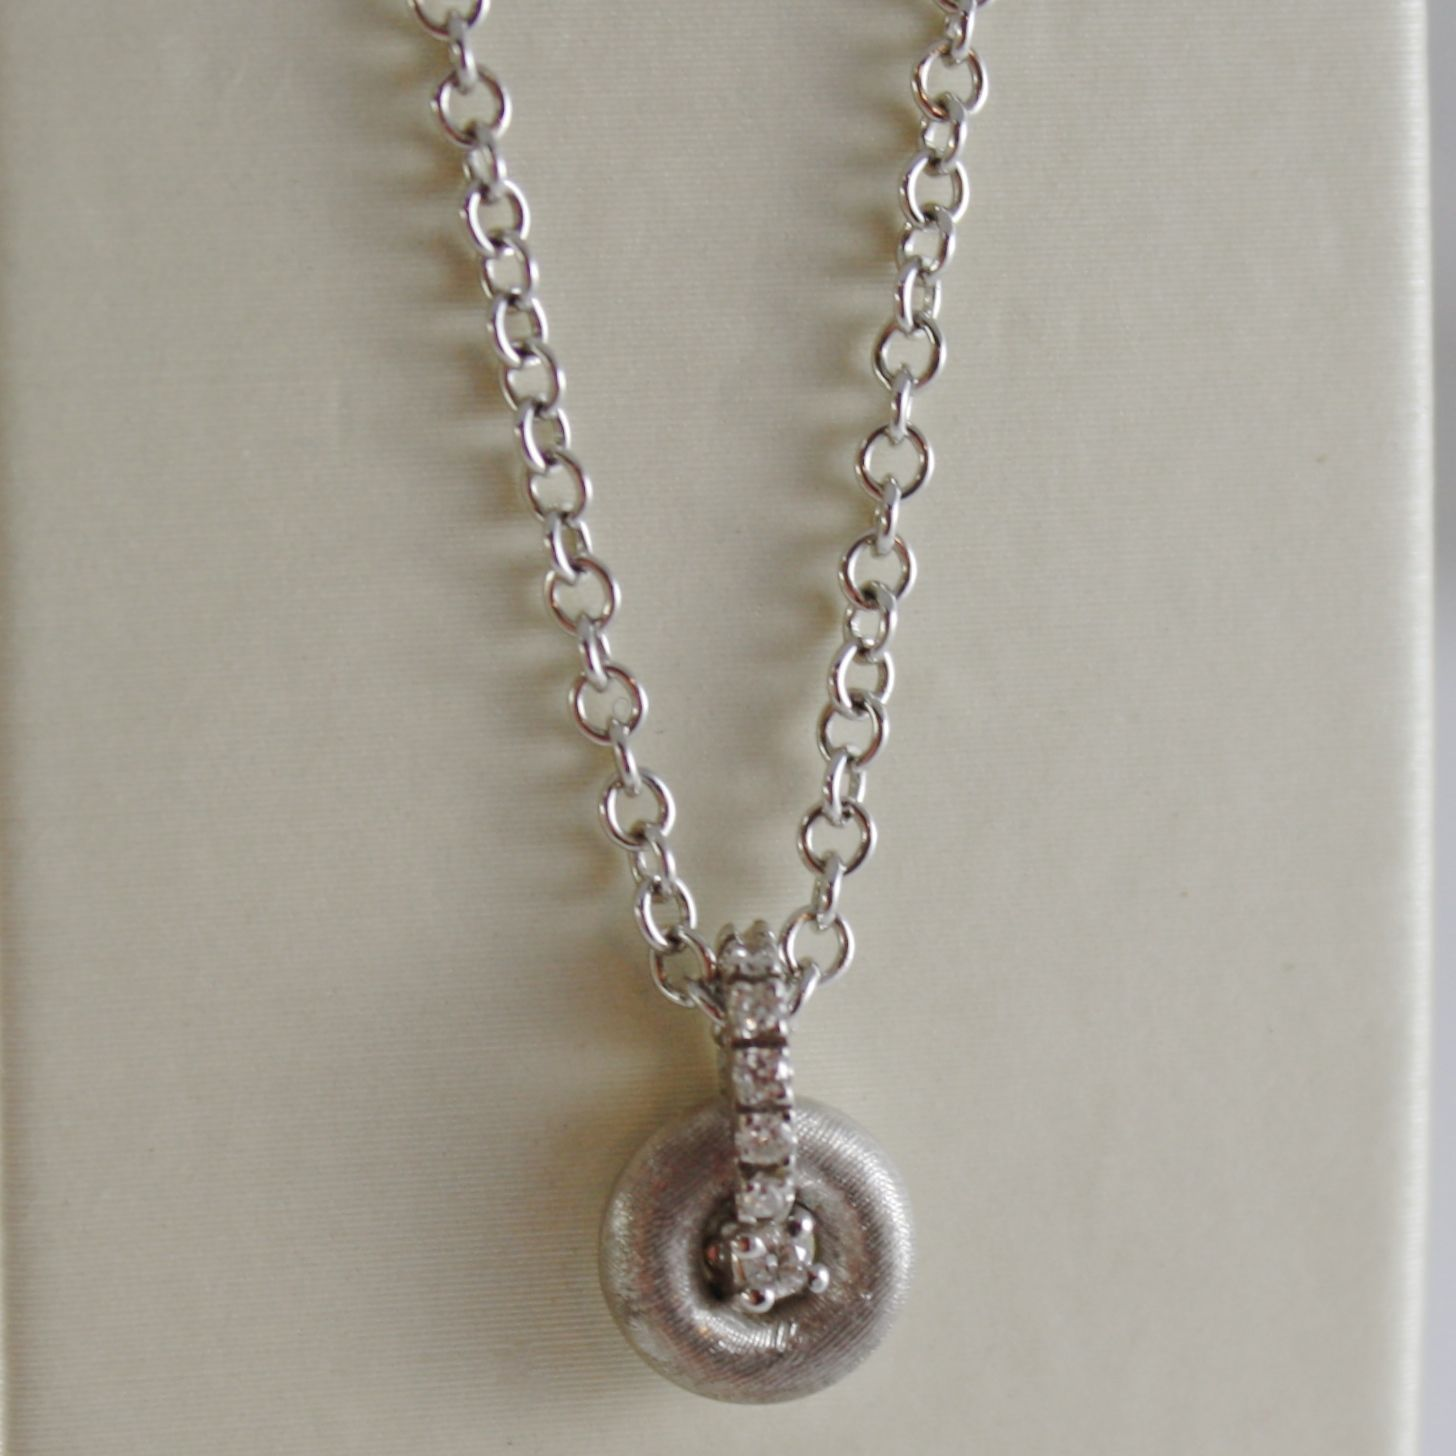 18K WHITE GOLD NANIS NECKLACE WITH DIAMOND 0.06 CT, ROLO CHAIN MADE IN ITALY